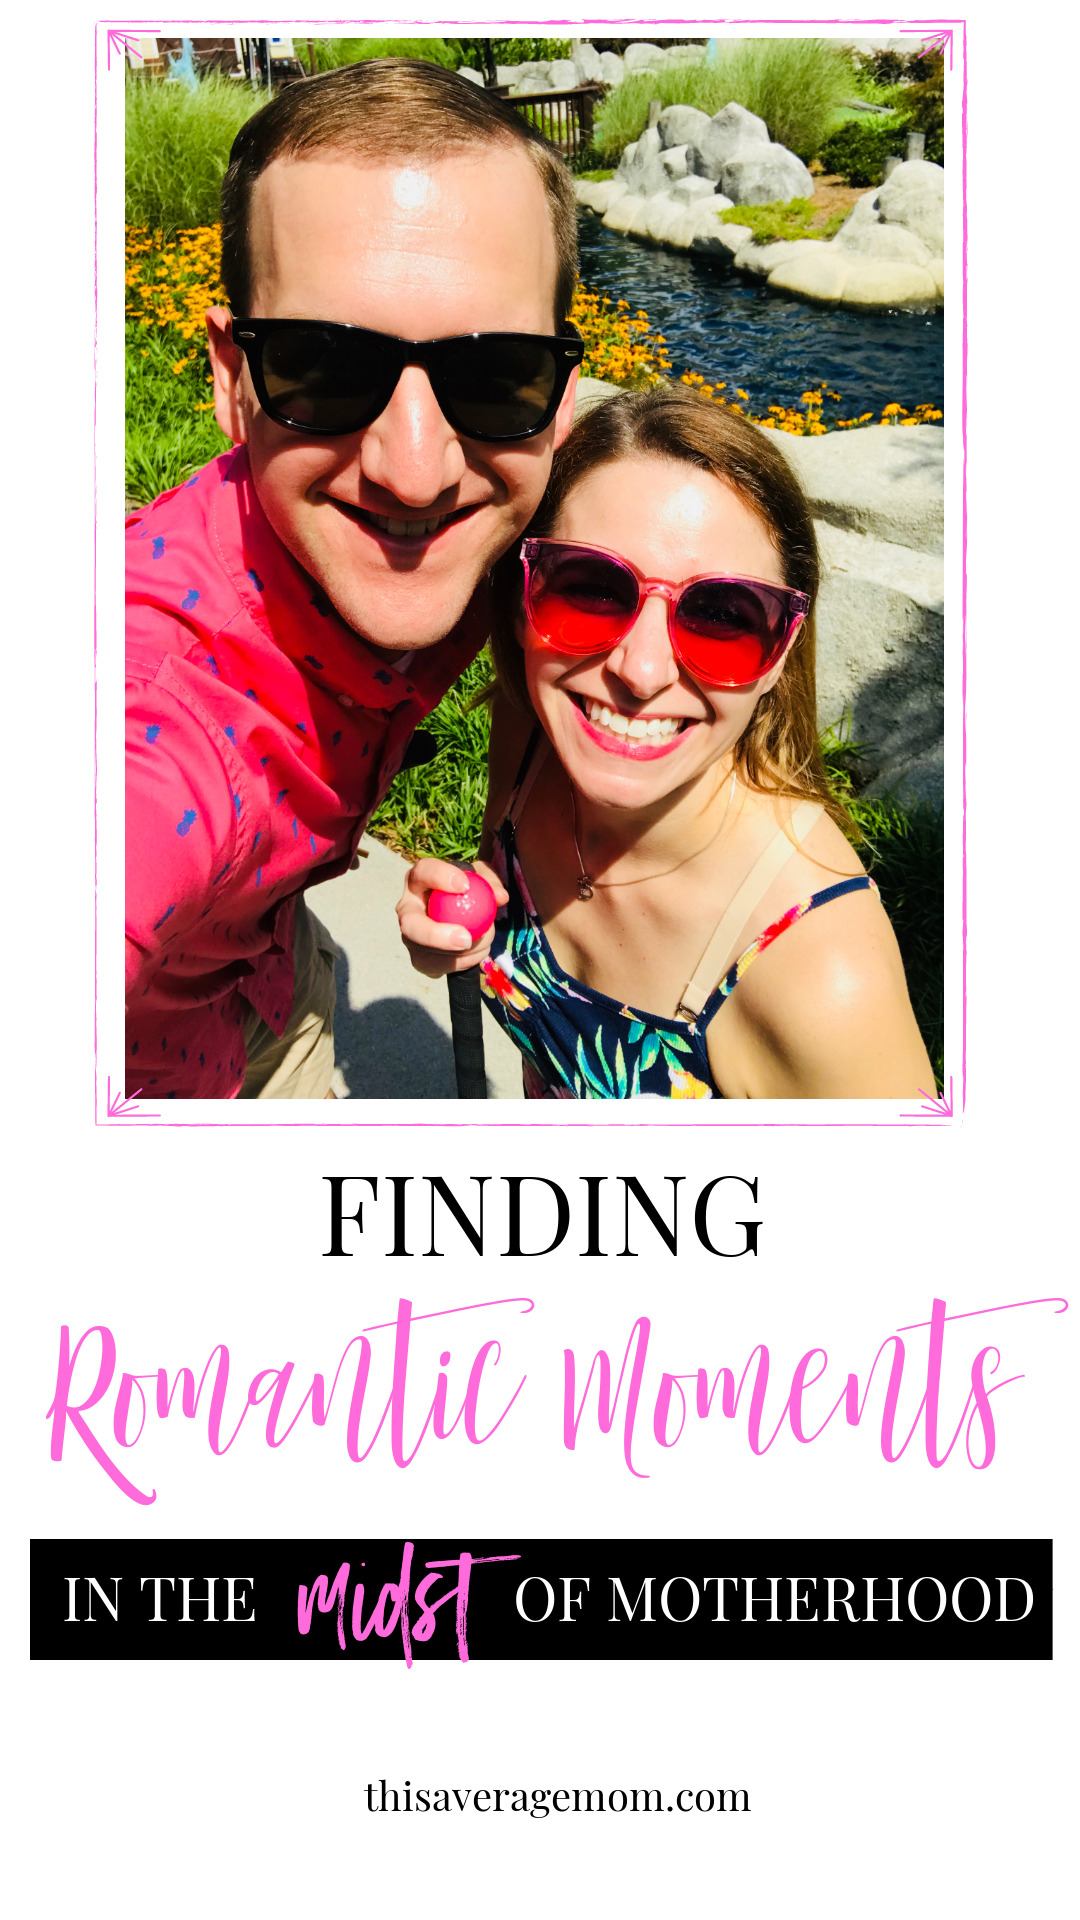 Ever feel like being a wife and a mom simultaneously is impossible? It doesn't have to be that way! Finding romantic moments with your spouse in the midst of motherhood is possible. This blog post will show you how! #marriage #relationships #parenthood